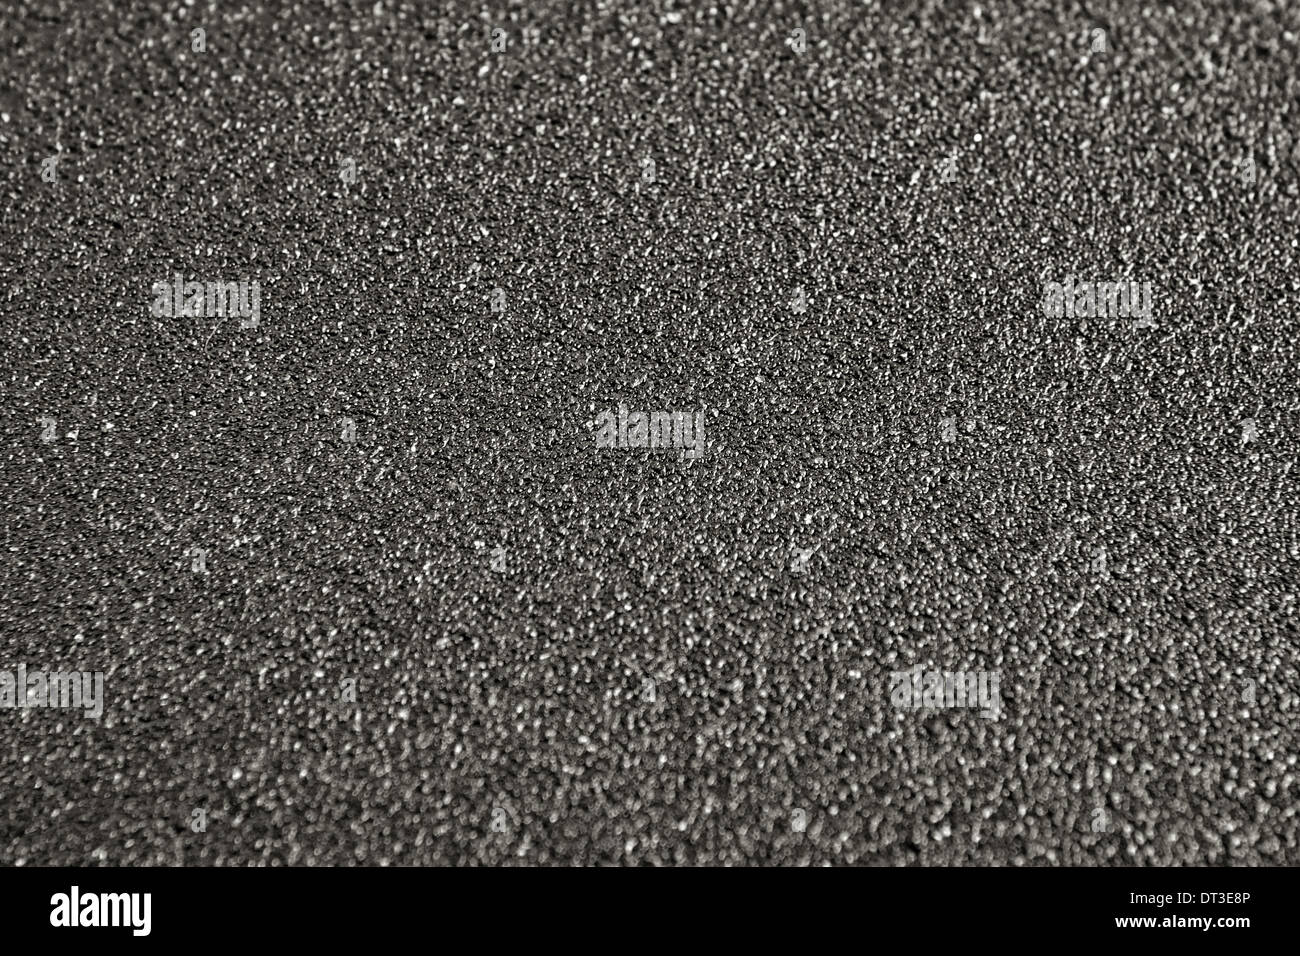 paper, rough, texture, background, sandpaper, abstract, backdrop, grain, material, black, carpentry, closeup, sand, textured, ab - Stock Image